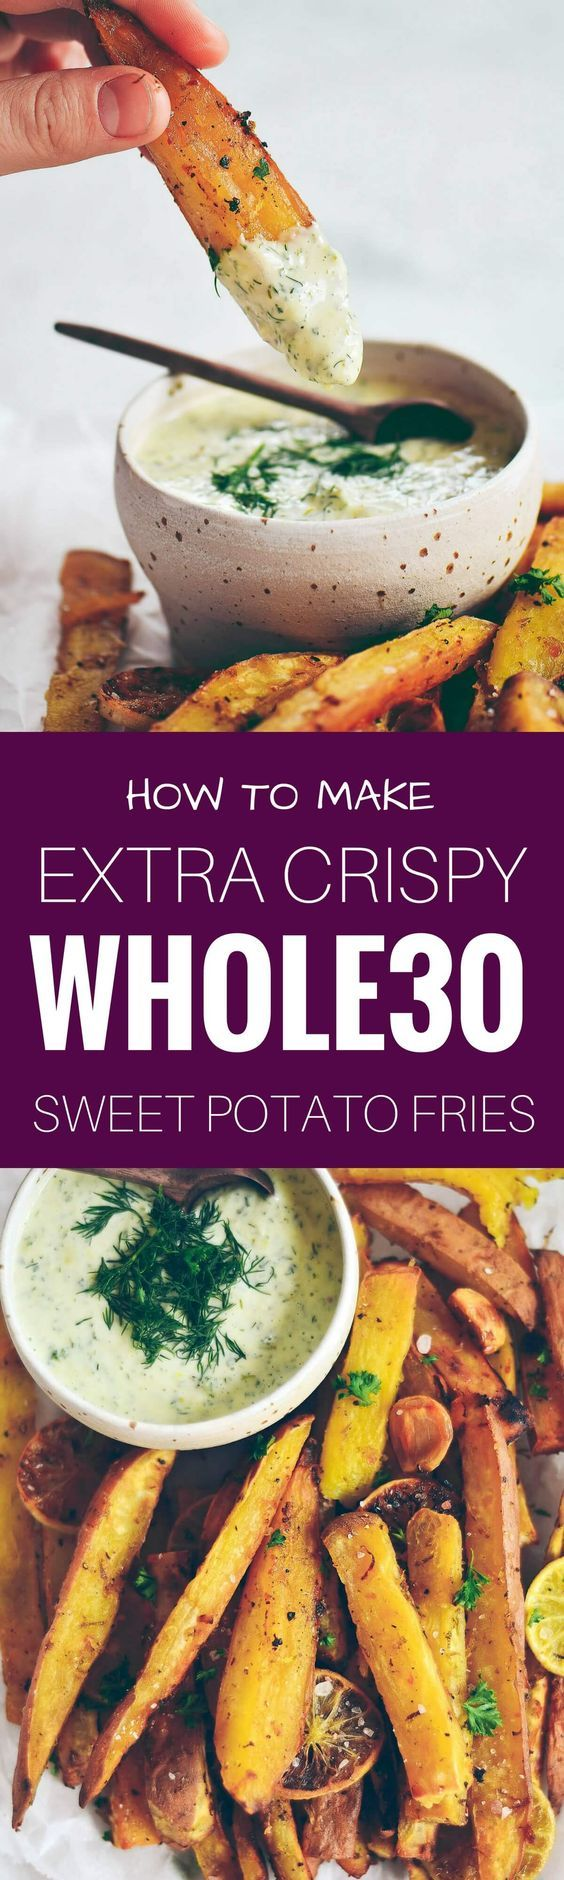 Extra crispy sweet potato fries and dipping sauce. Baked sweet potato fries. Easy sweet potato fries. Easy whole30 snacks. Paleo sweet potato fries recipe. Healthy sweet potato fries. Easy whole30 din